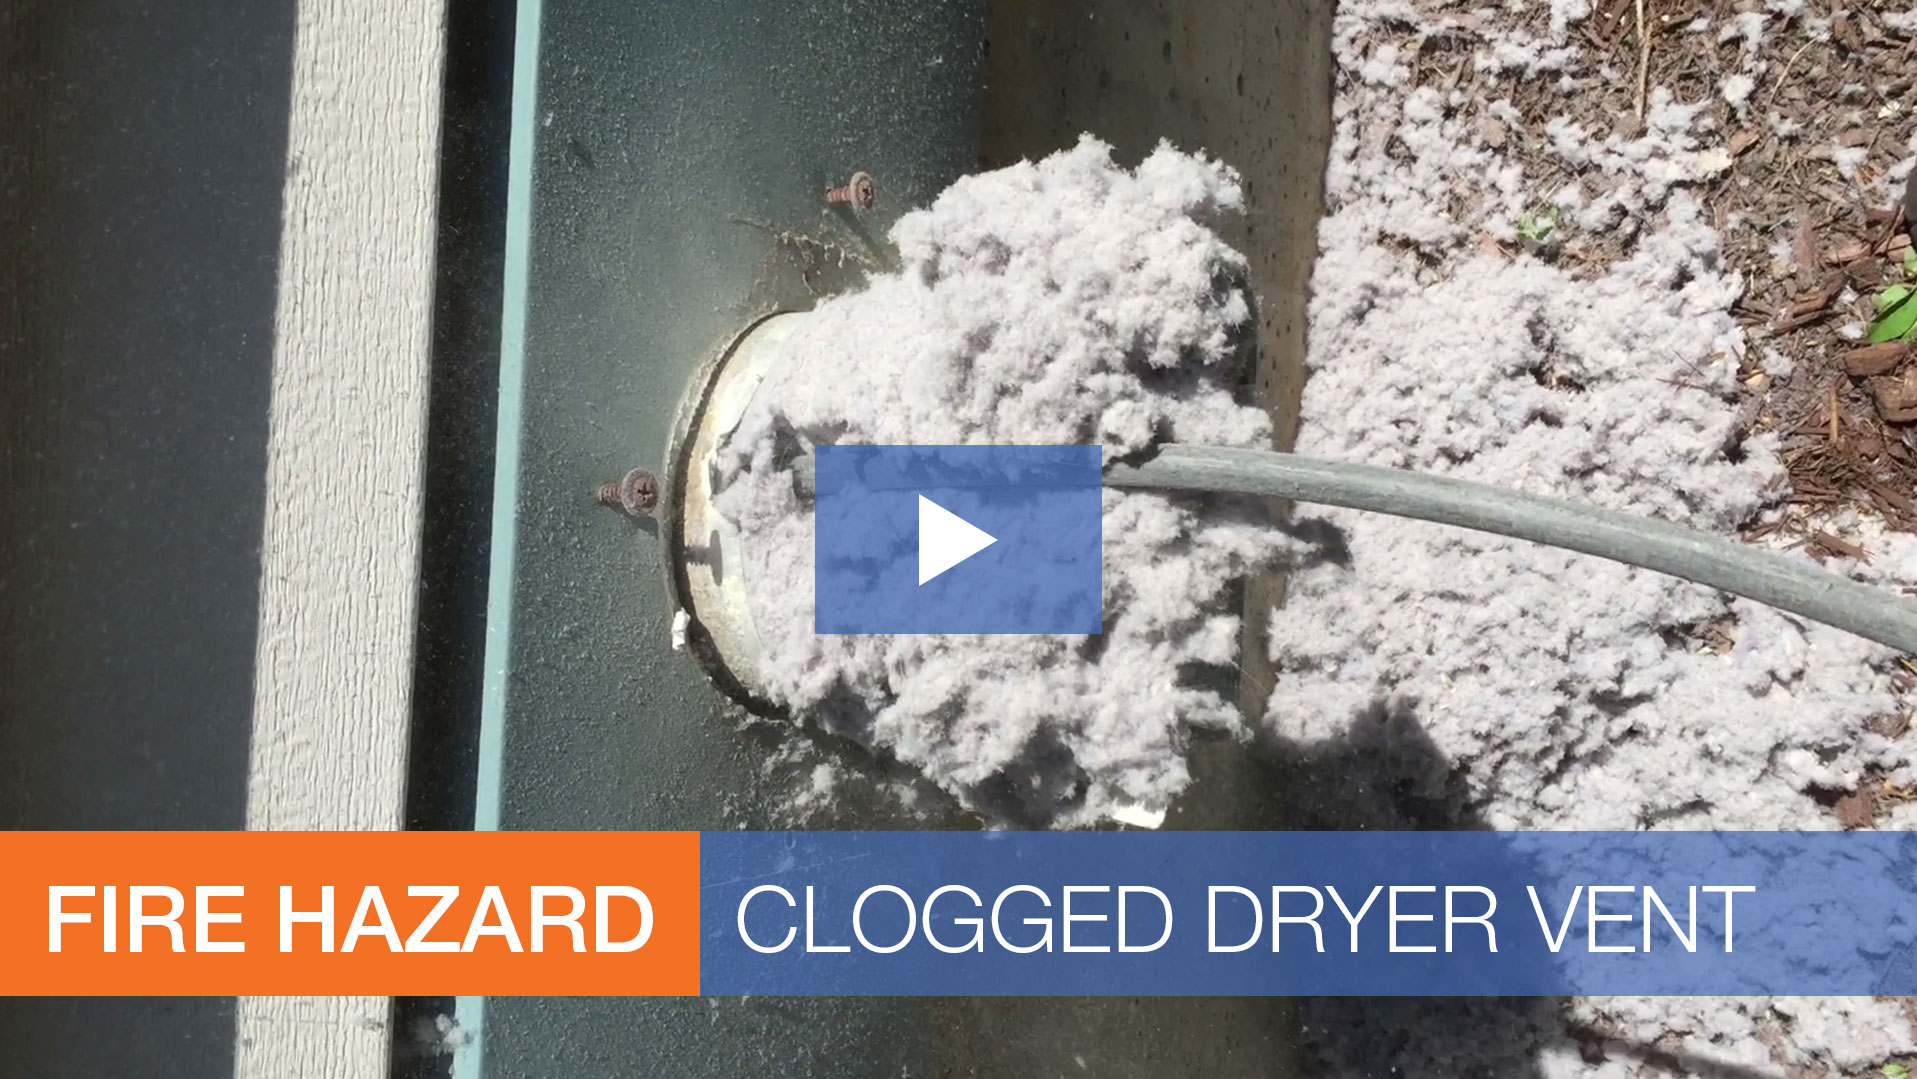 video severely clogged dryer vent extreme lint buildup fire hazard